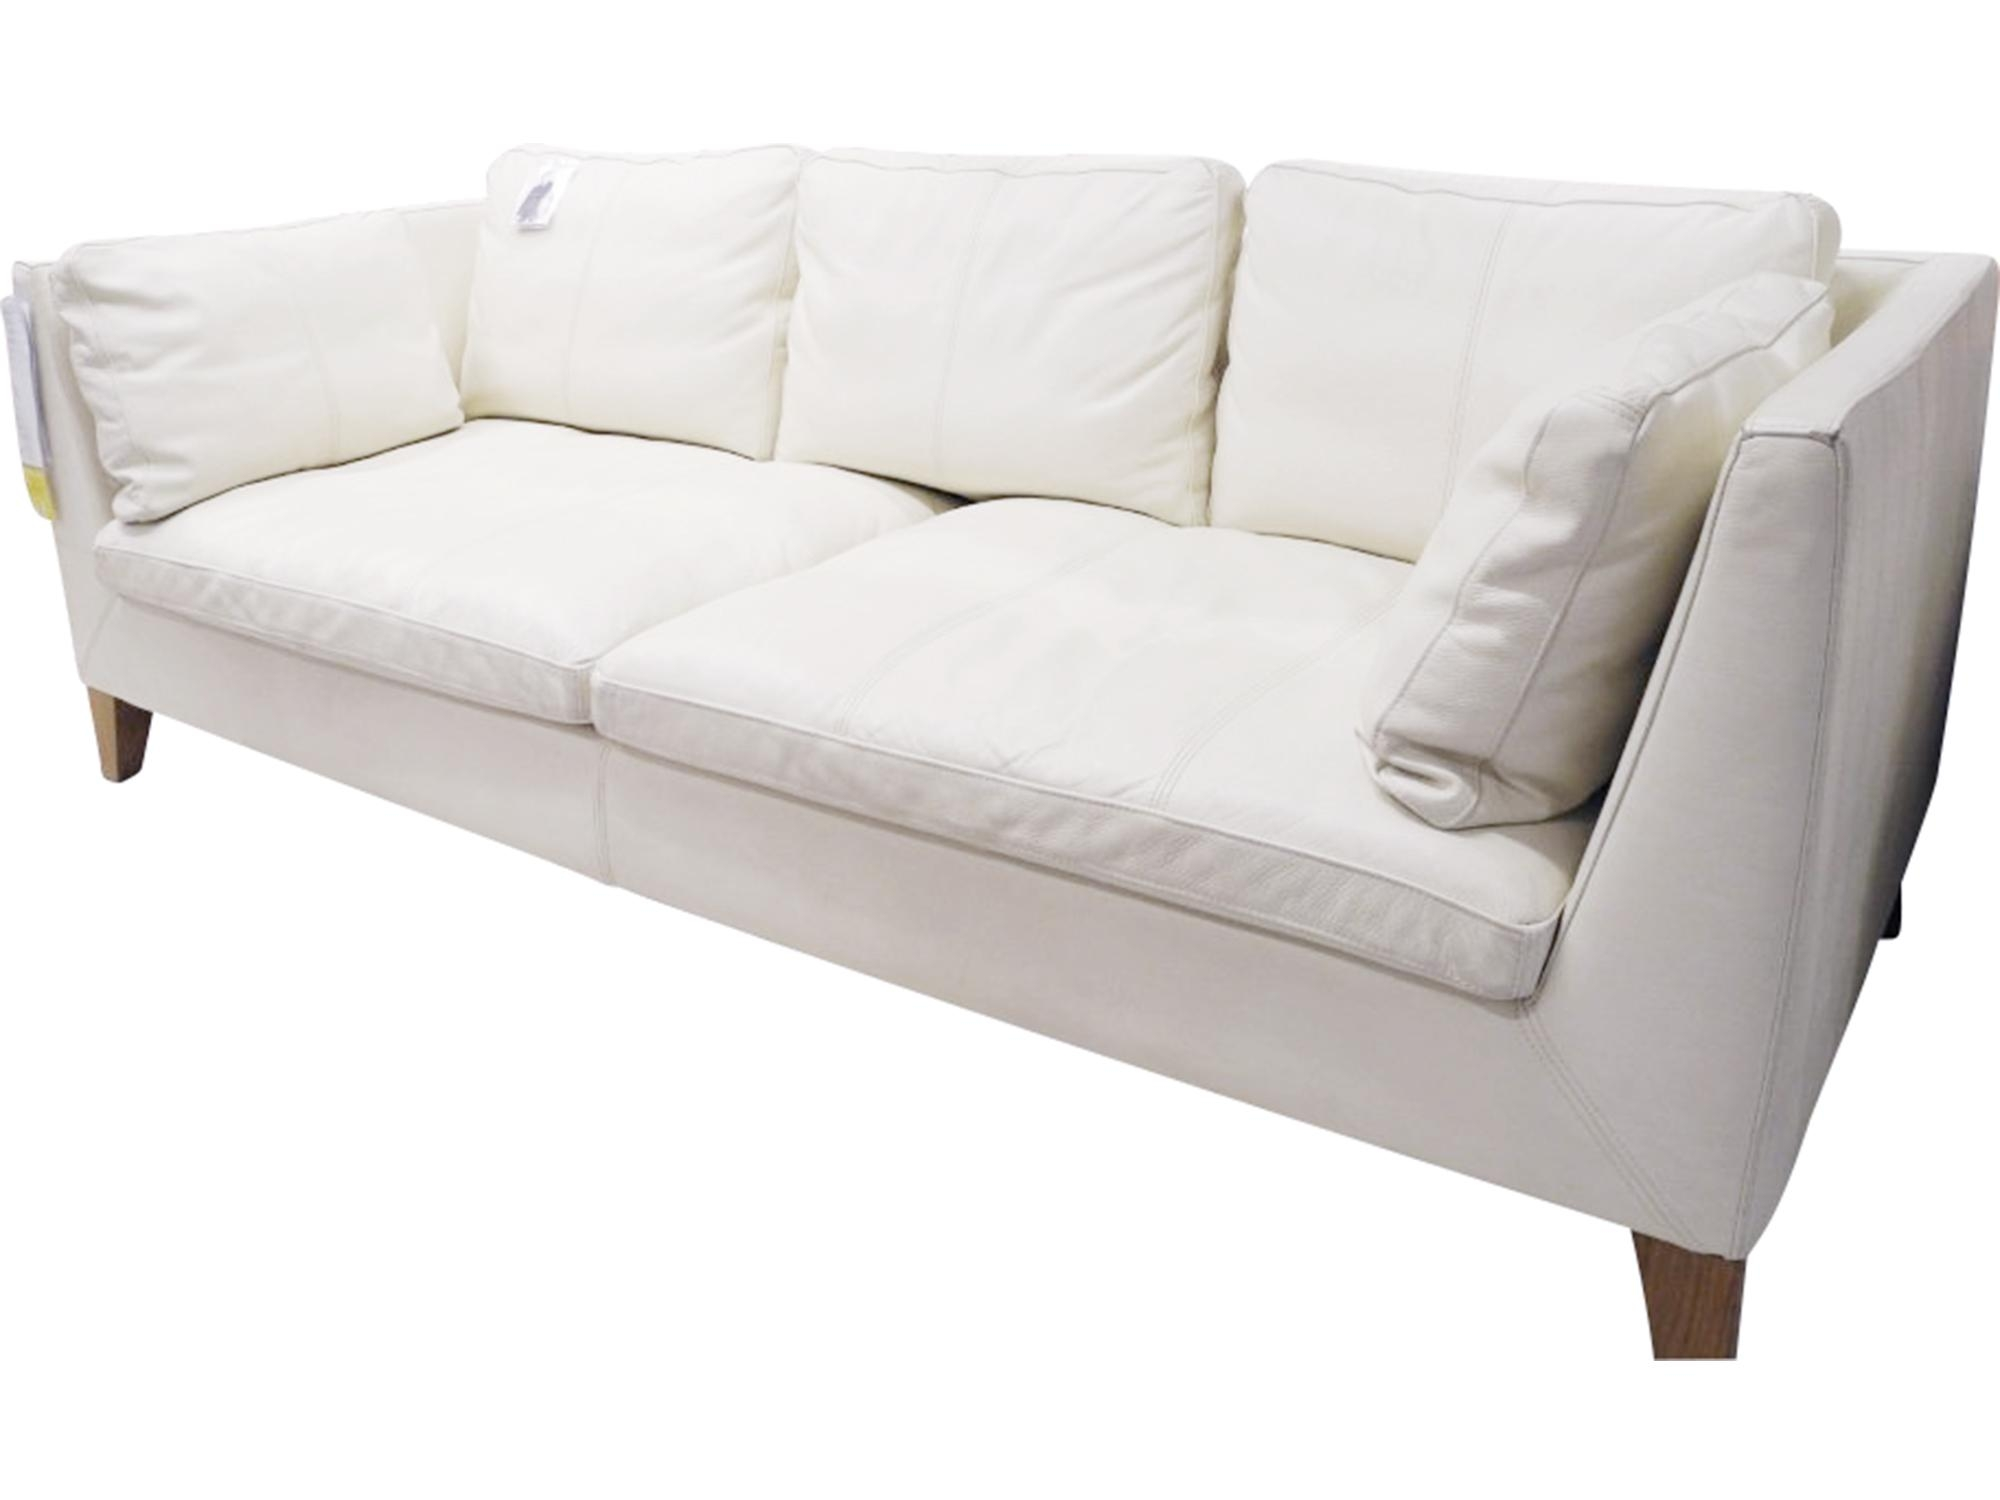 Alan White Sofa With Ideas Hd Gallery 6315 | Kengire Inside Alan White Couches (Image 18 of 20)